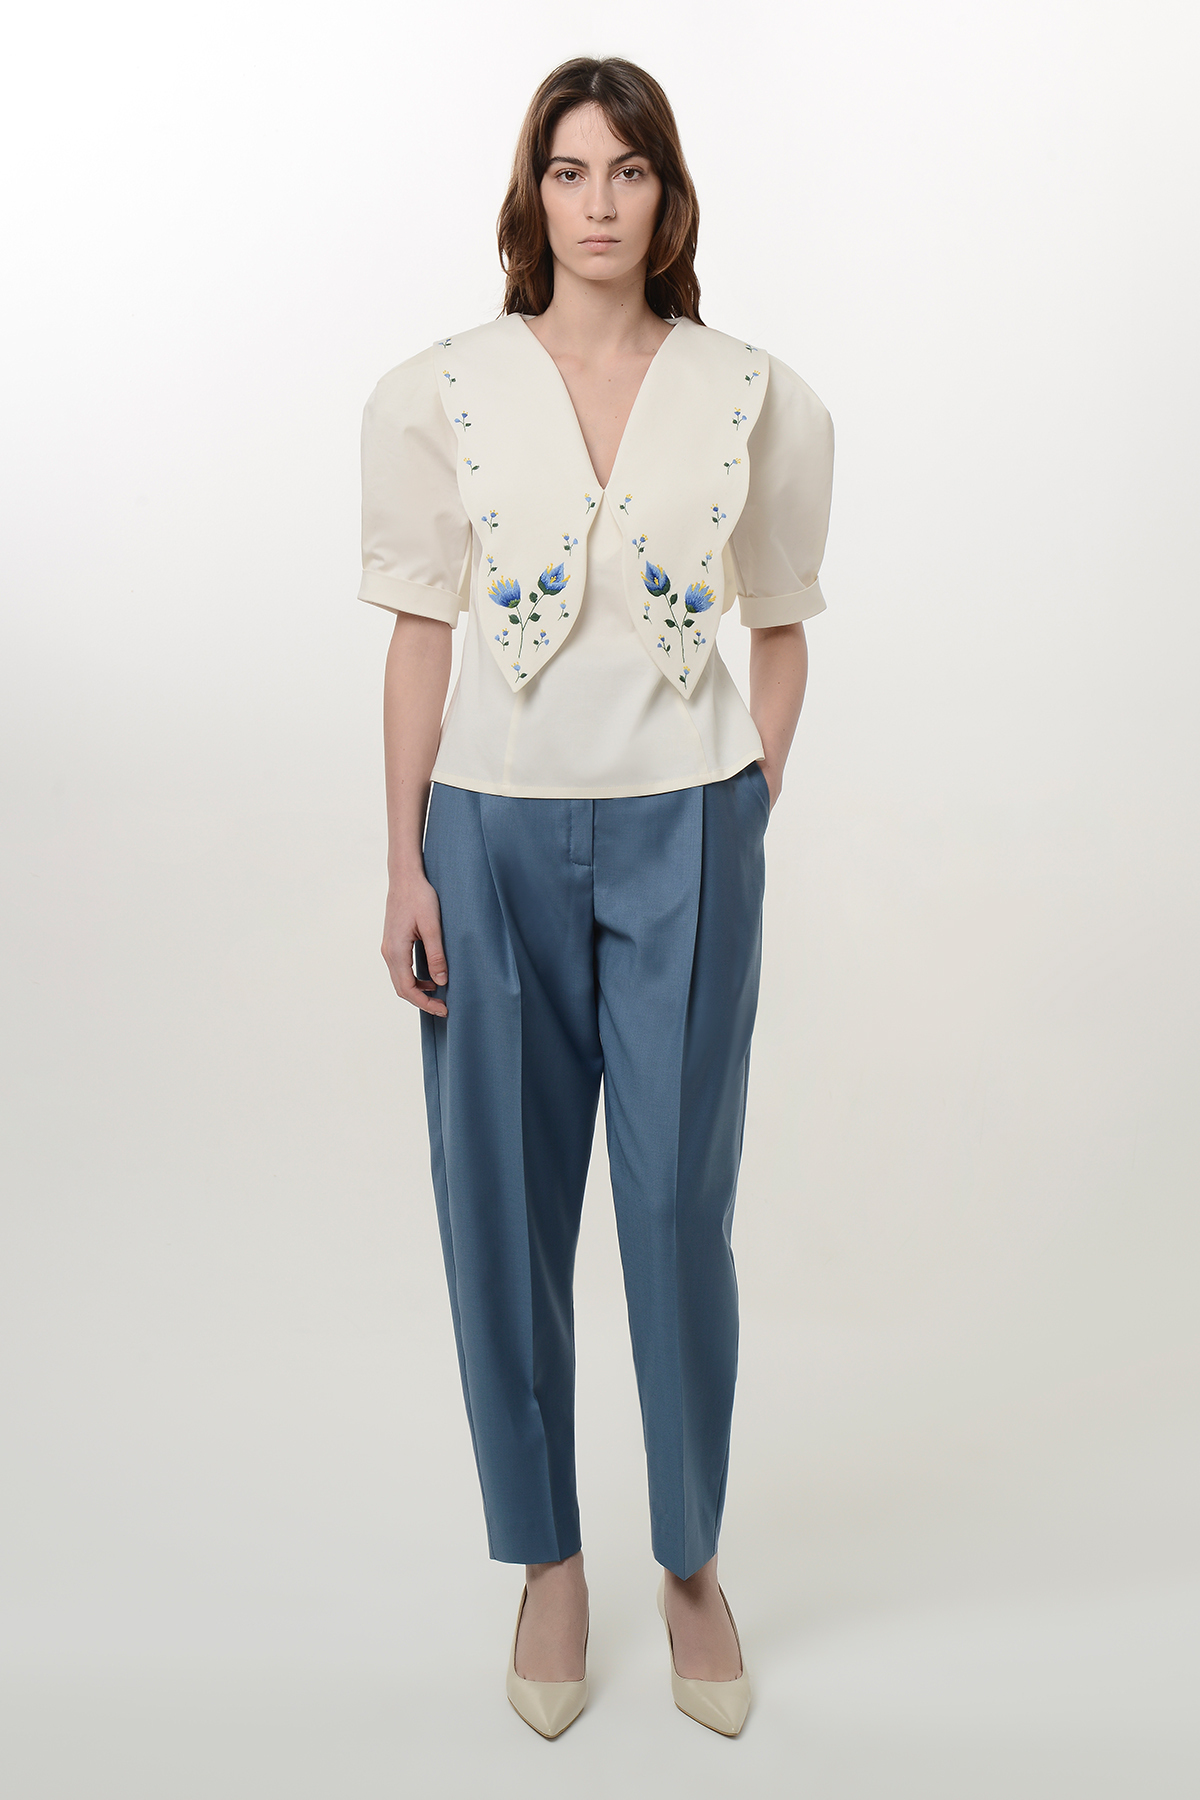 White blouse with embroidery collar